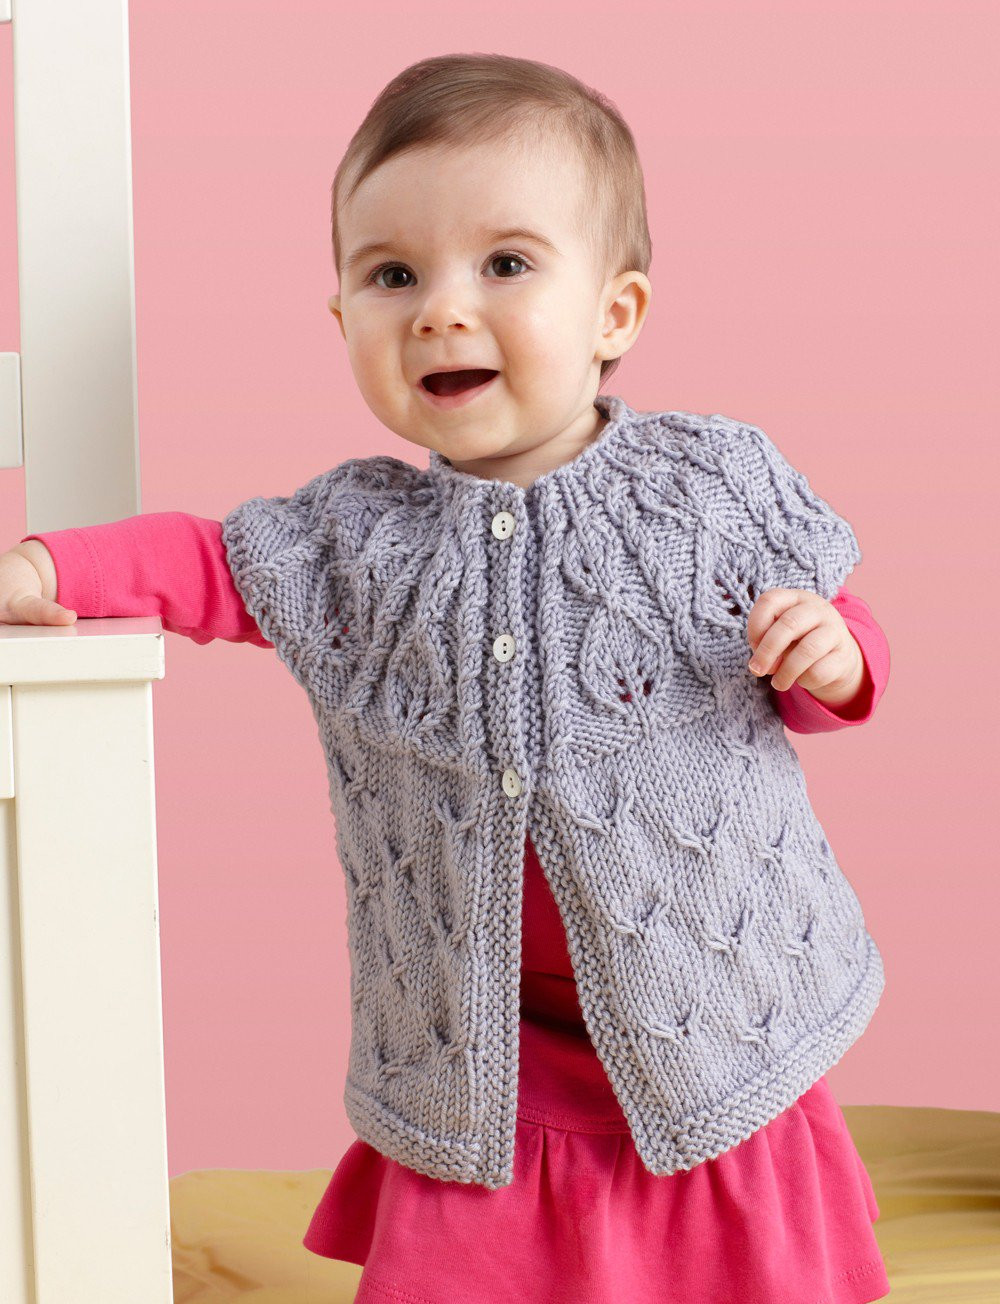 Free Knitting Patterns Elegant 10 Free Baby Sweater Knitting Patterns Of Amazing 46 Ideas Free Knitting Patterns